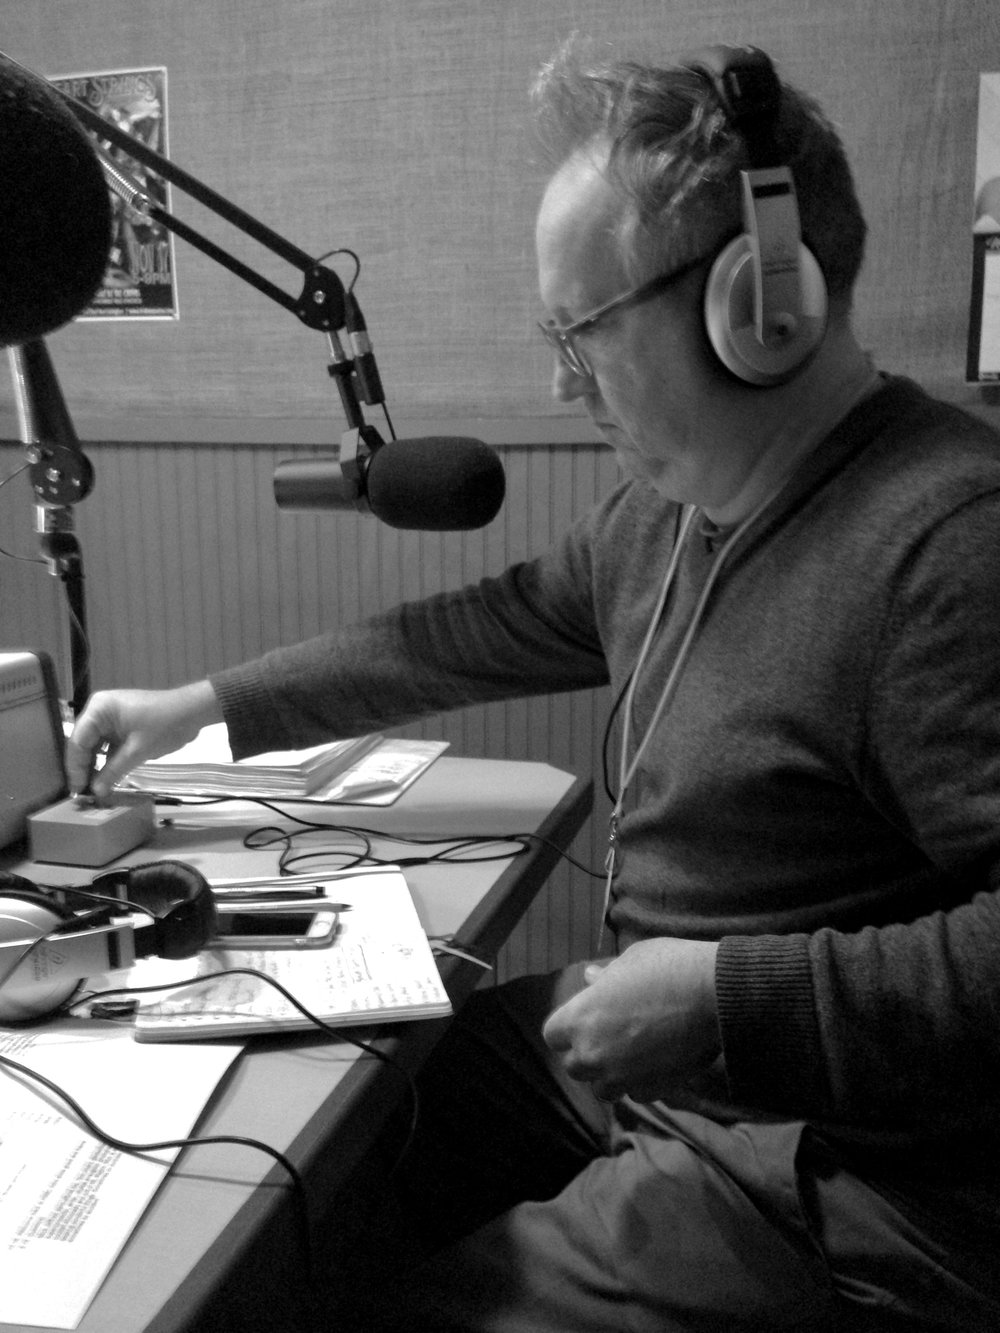 Mick Jeffries on the other side of the studio desk, guesting at Hot Water Cornbread. Mick hosts the long-running WRFL (88.1) radio show  Trivial Thursdays  every Thursday from 7 - 9 AM.